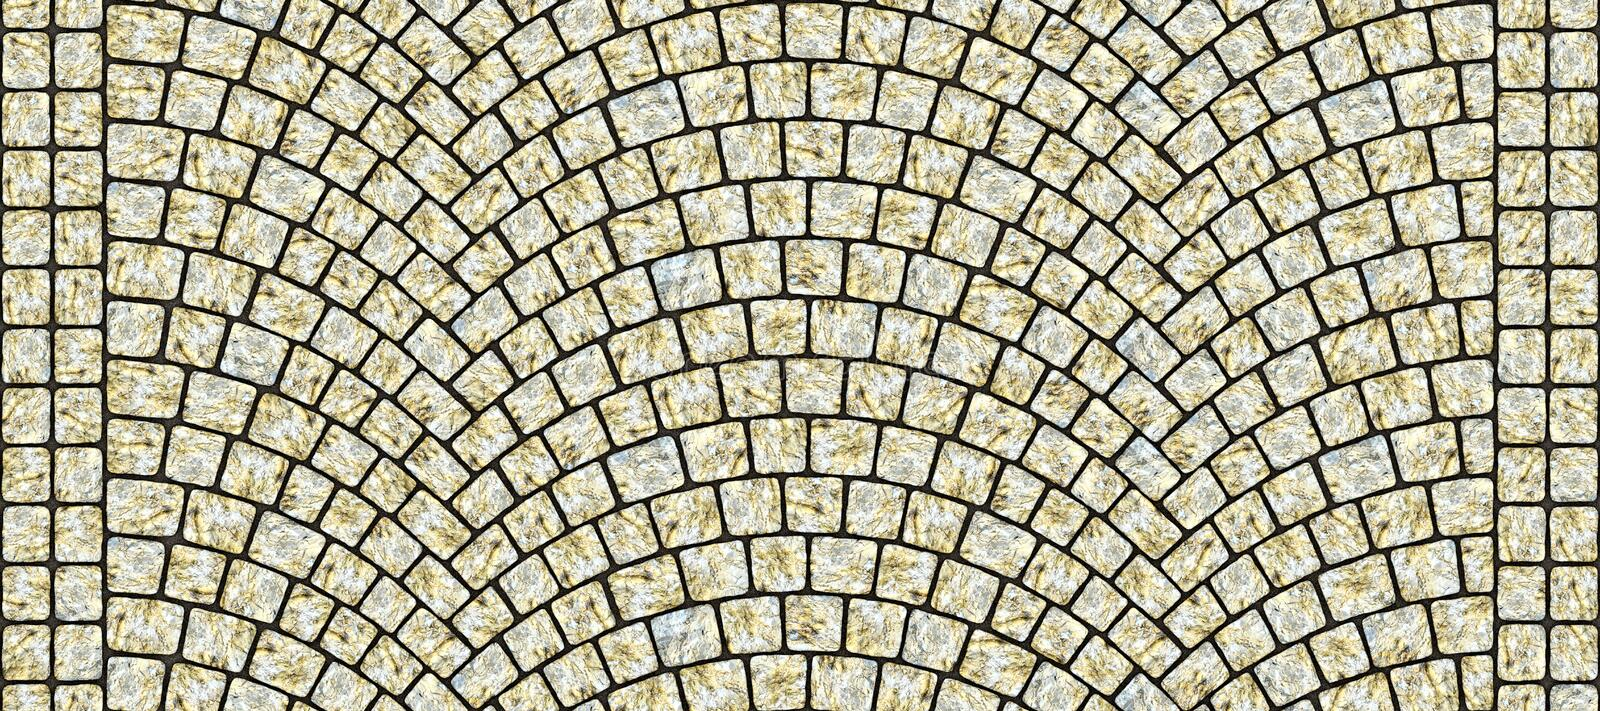 Road curved cobblestone texture 105. Cobblestone arched pavement road with edge courses at the sidewalk. Seamless tileable repeating 3D rendering texture royalty free illustration